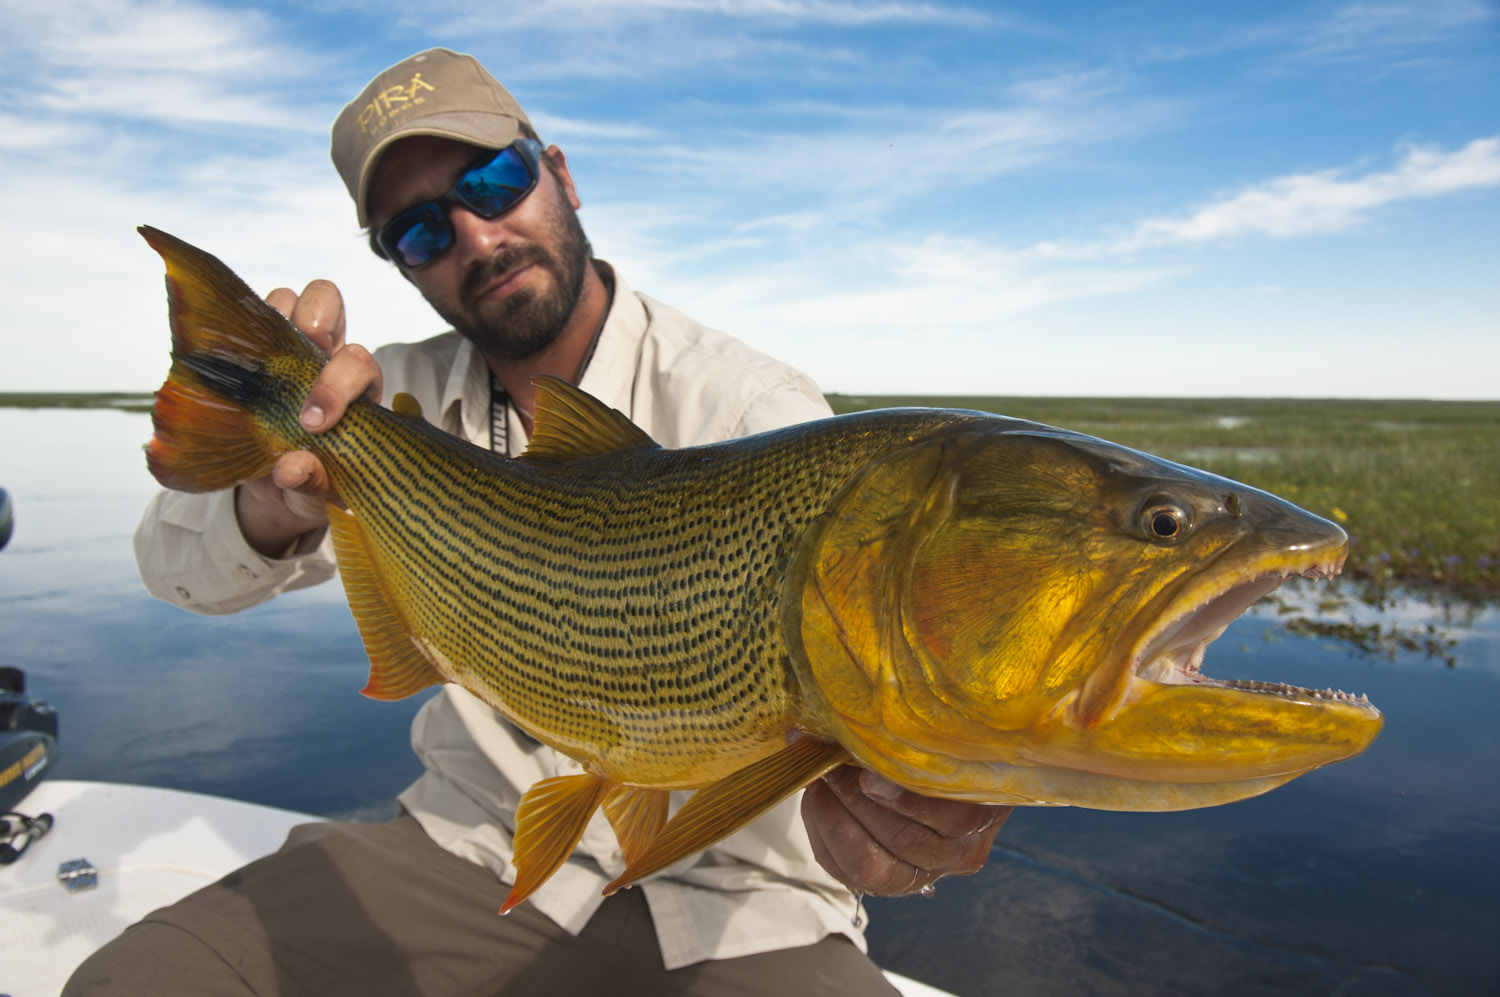 Fishing at pira lodge argentina for golden dorado for Trolling for fish